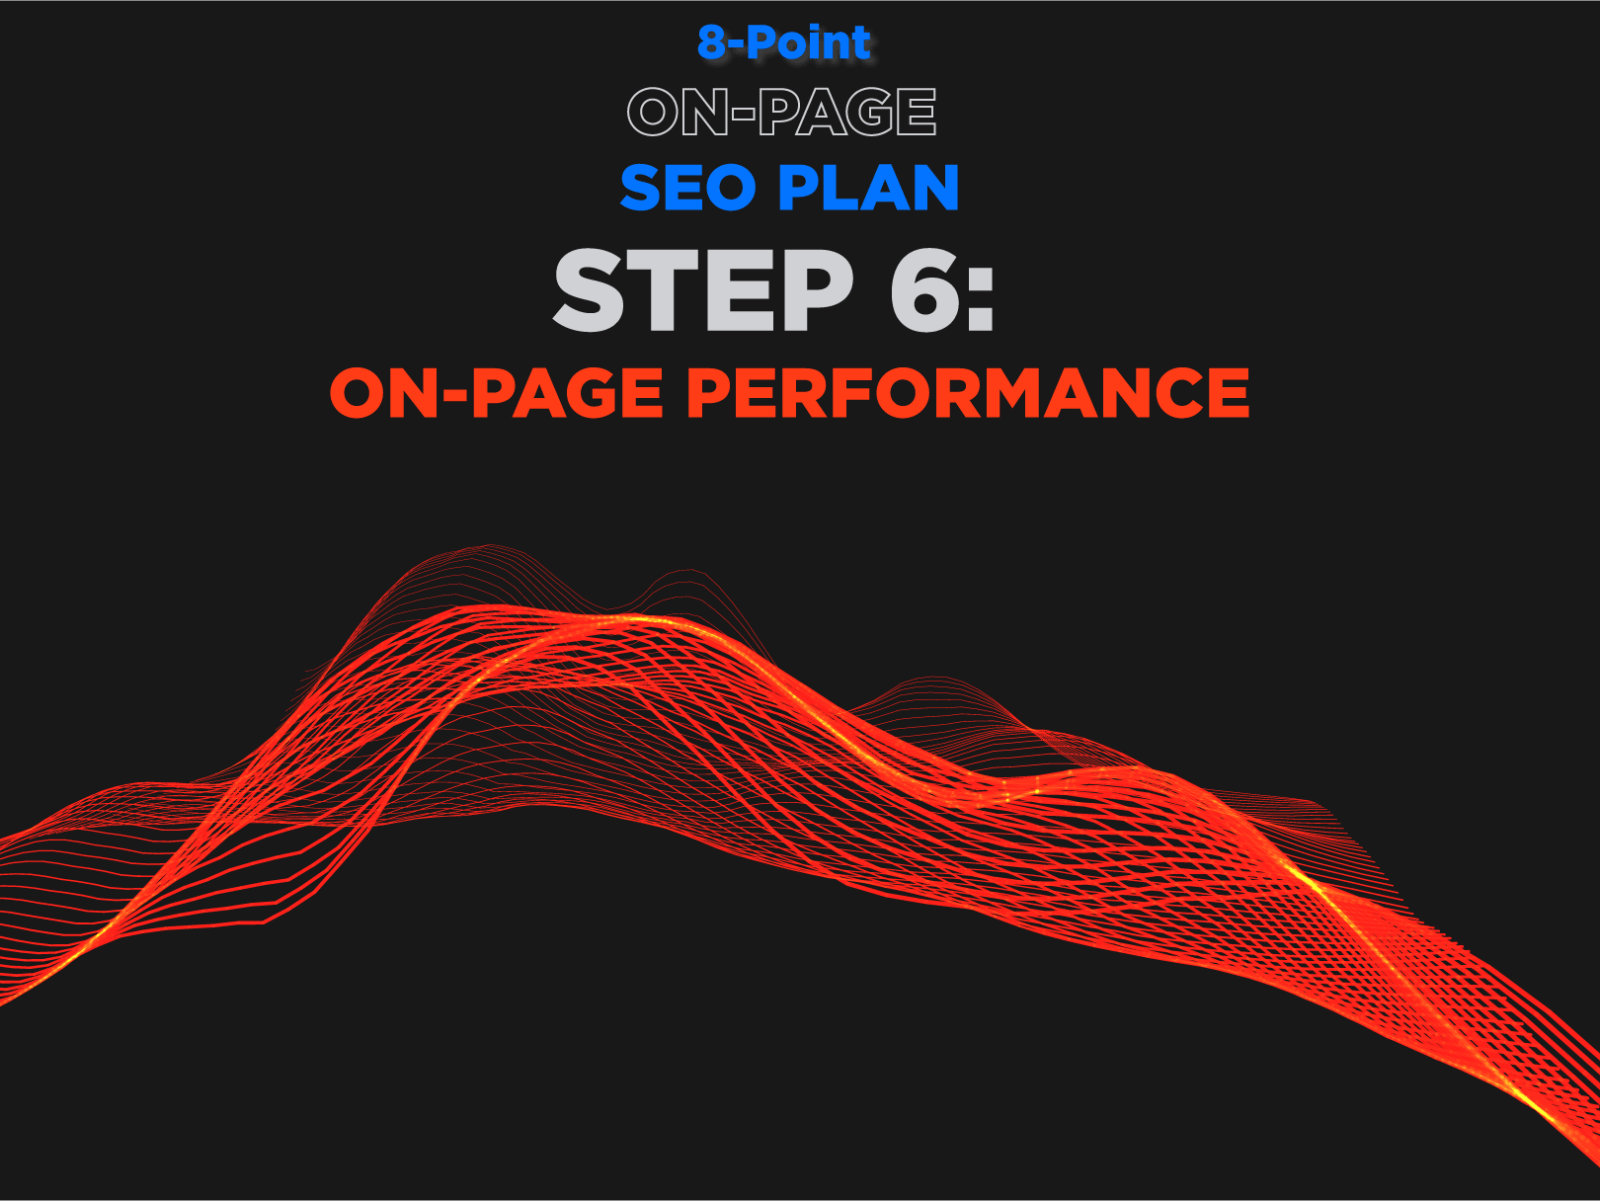 8-Point On-Page SEO Plan, Step 6: On-Page Performance